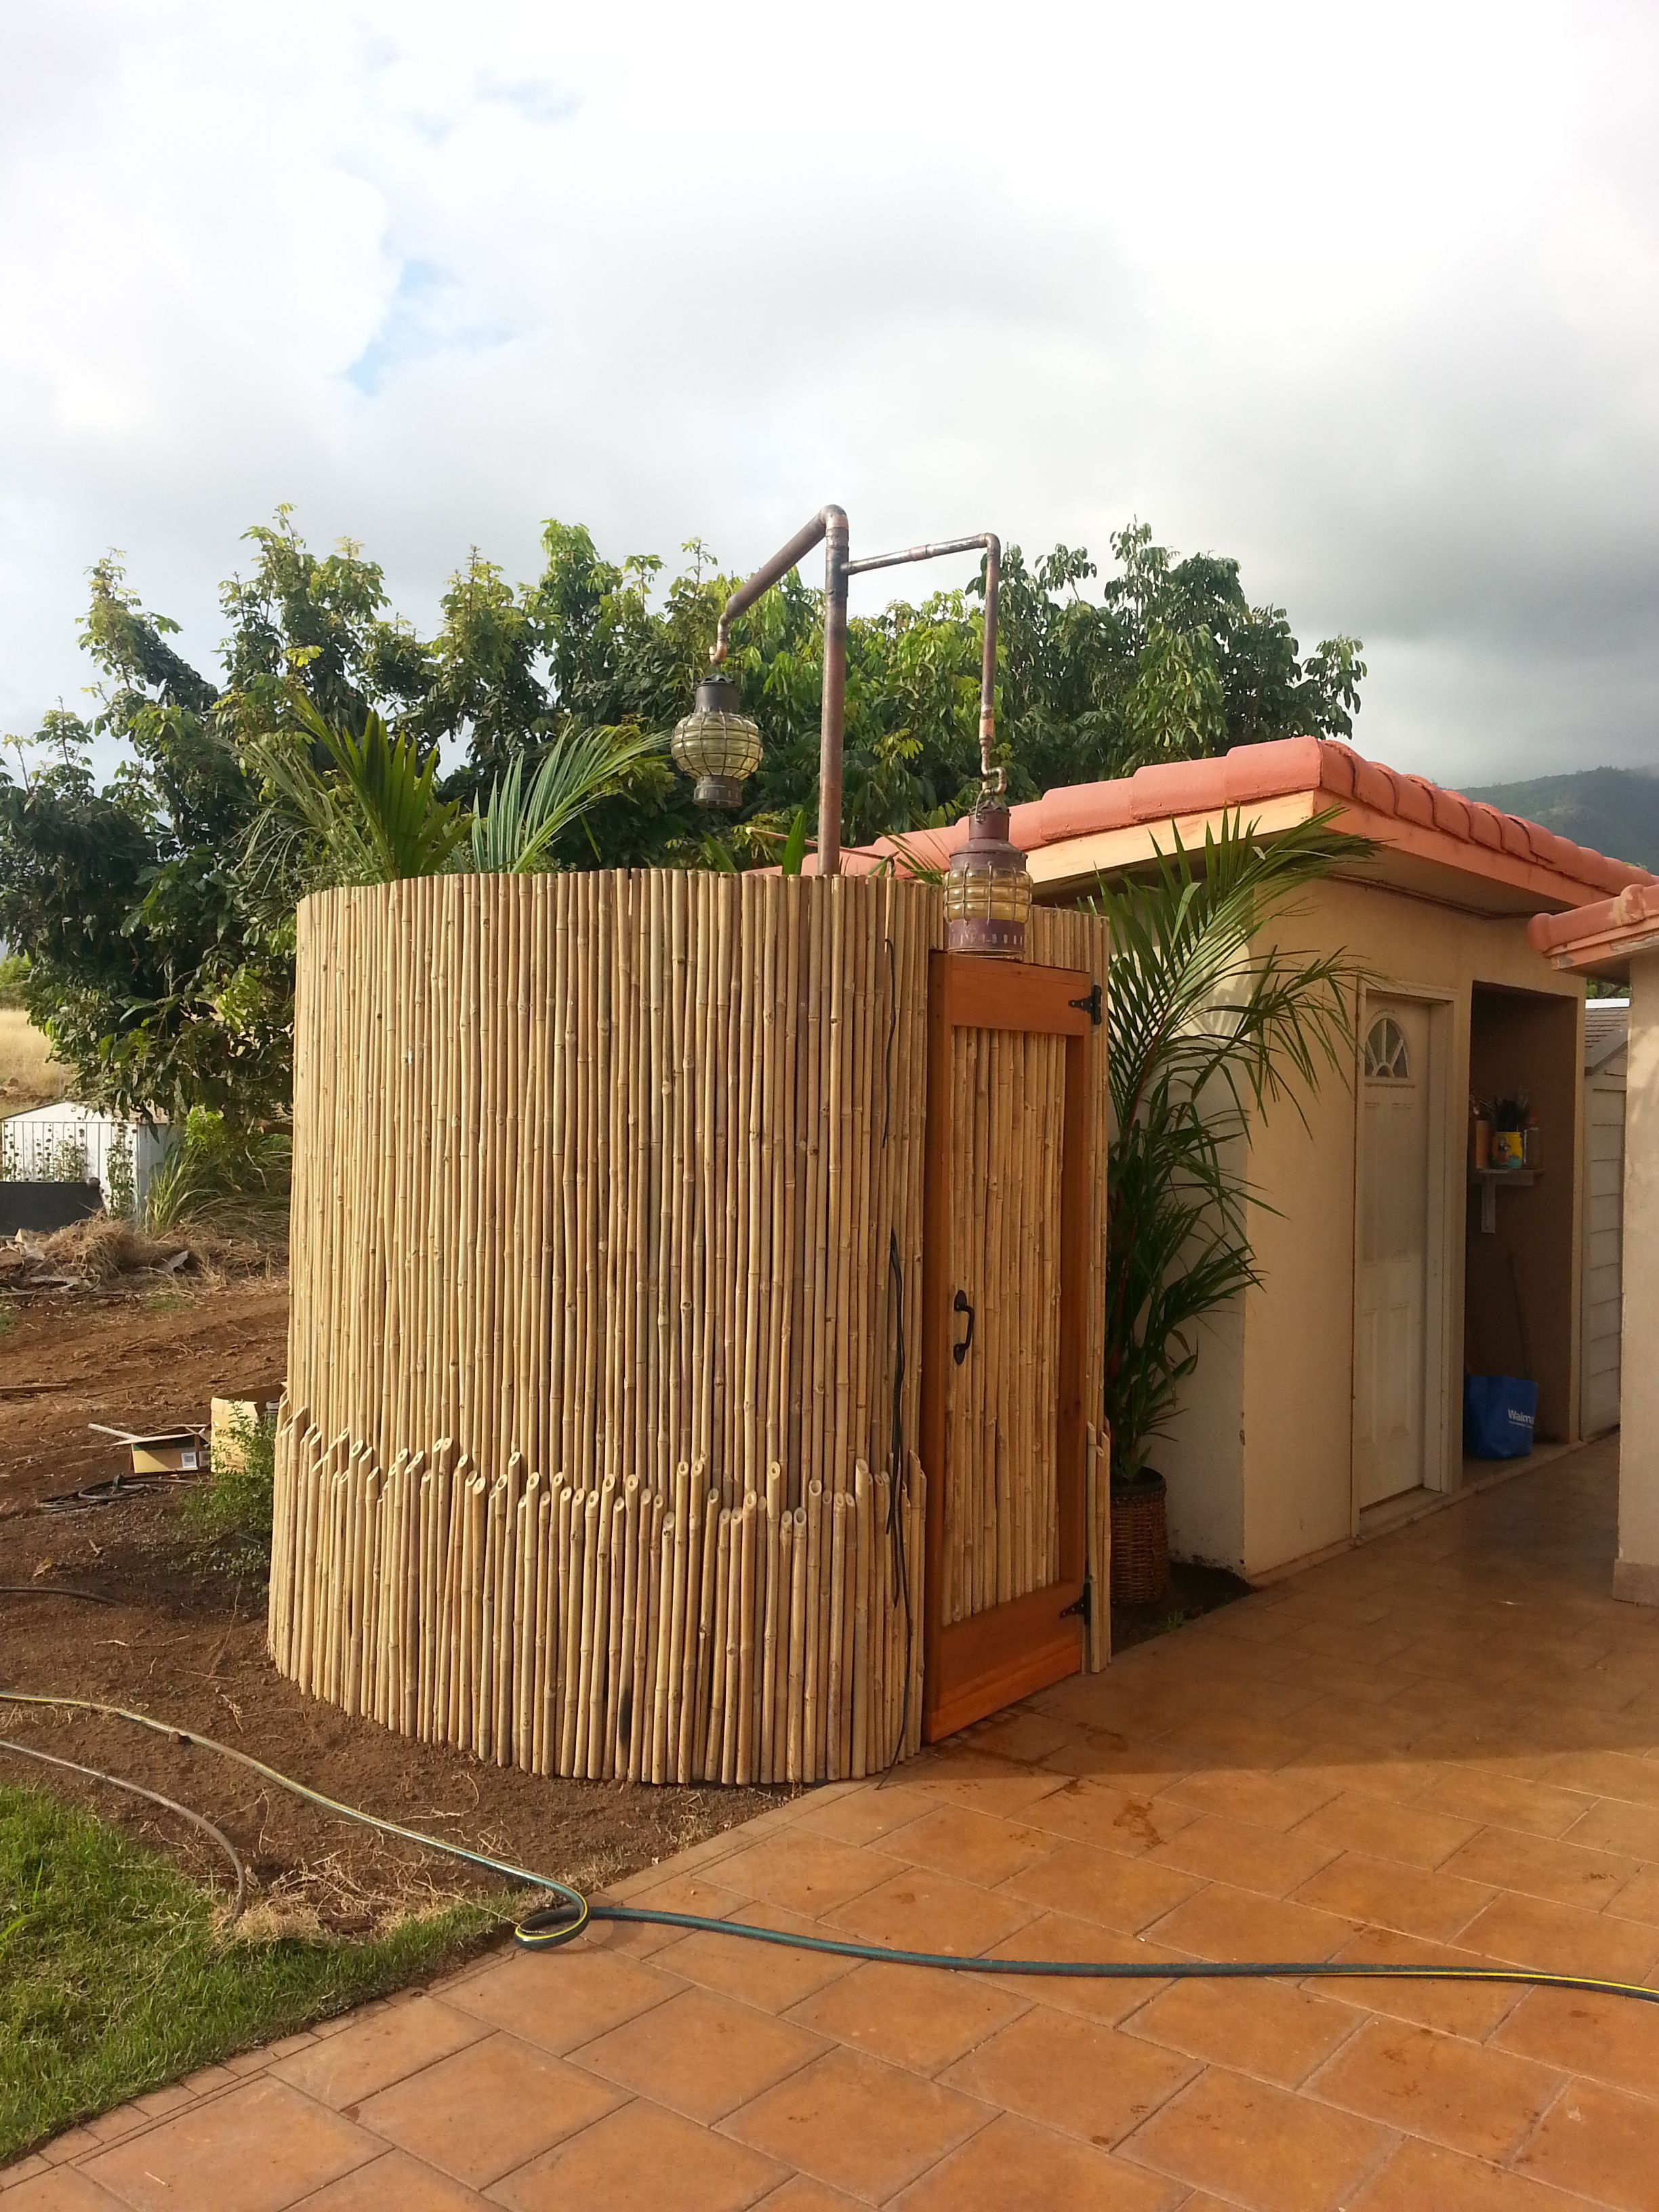 Bamboo Outdoor Shower Enclosures Bamboo Outdoor Shower Bamboo Outdoor Showers